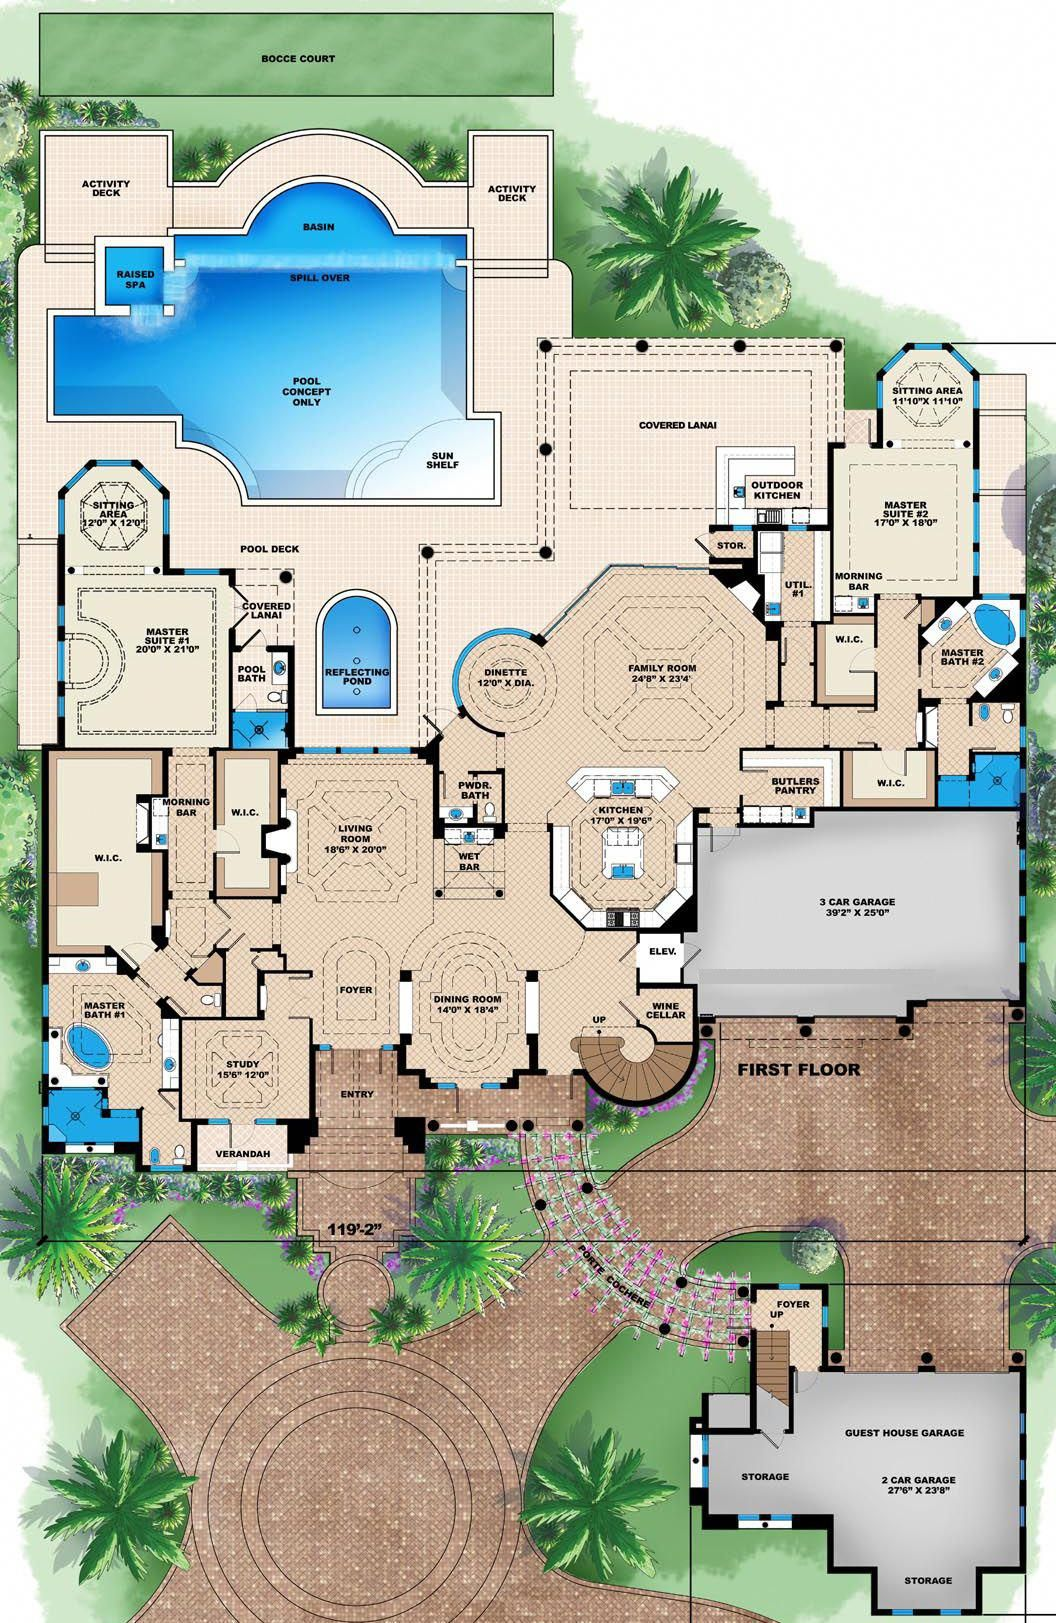 Mediterranean Plan 10 662 Square Feet 6 Bedrooms 8 5 Bathrooms 1018 00271 Bedroomlayout House Plans Mansion Beach House Plans Mediterranean House Plans